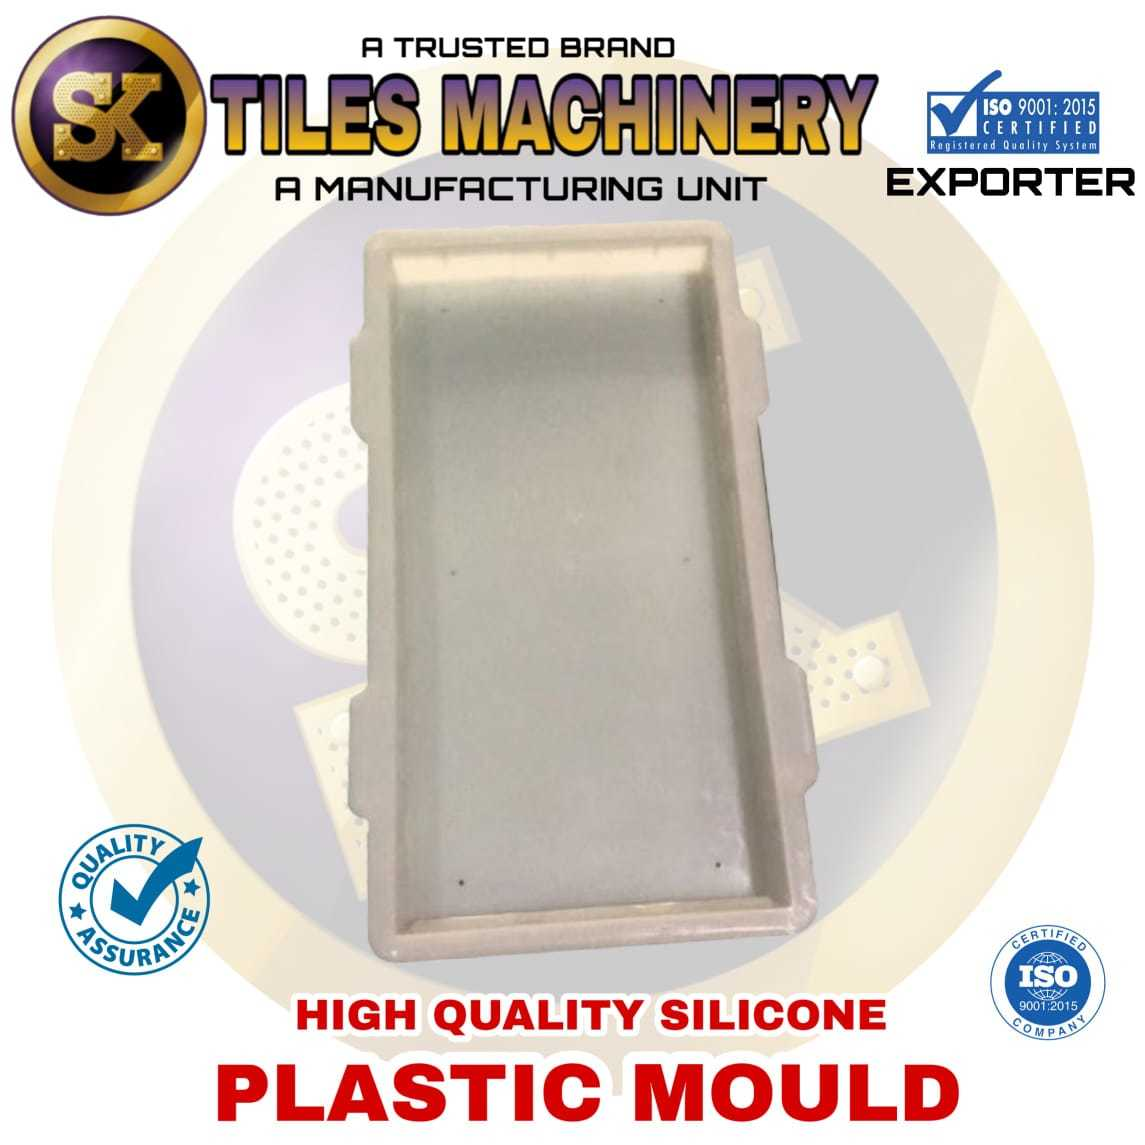 High quality Silicone Plastic Mould